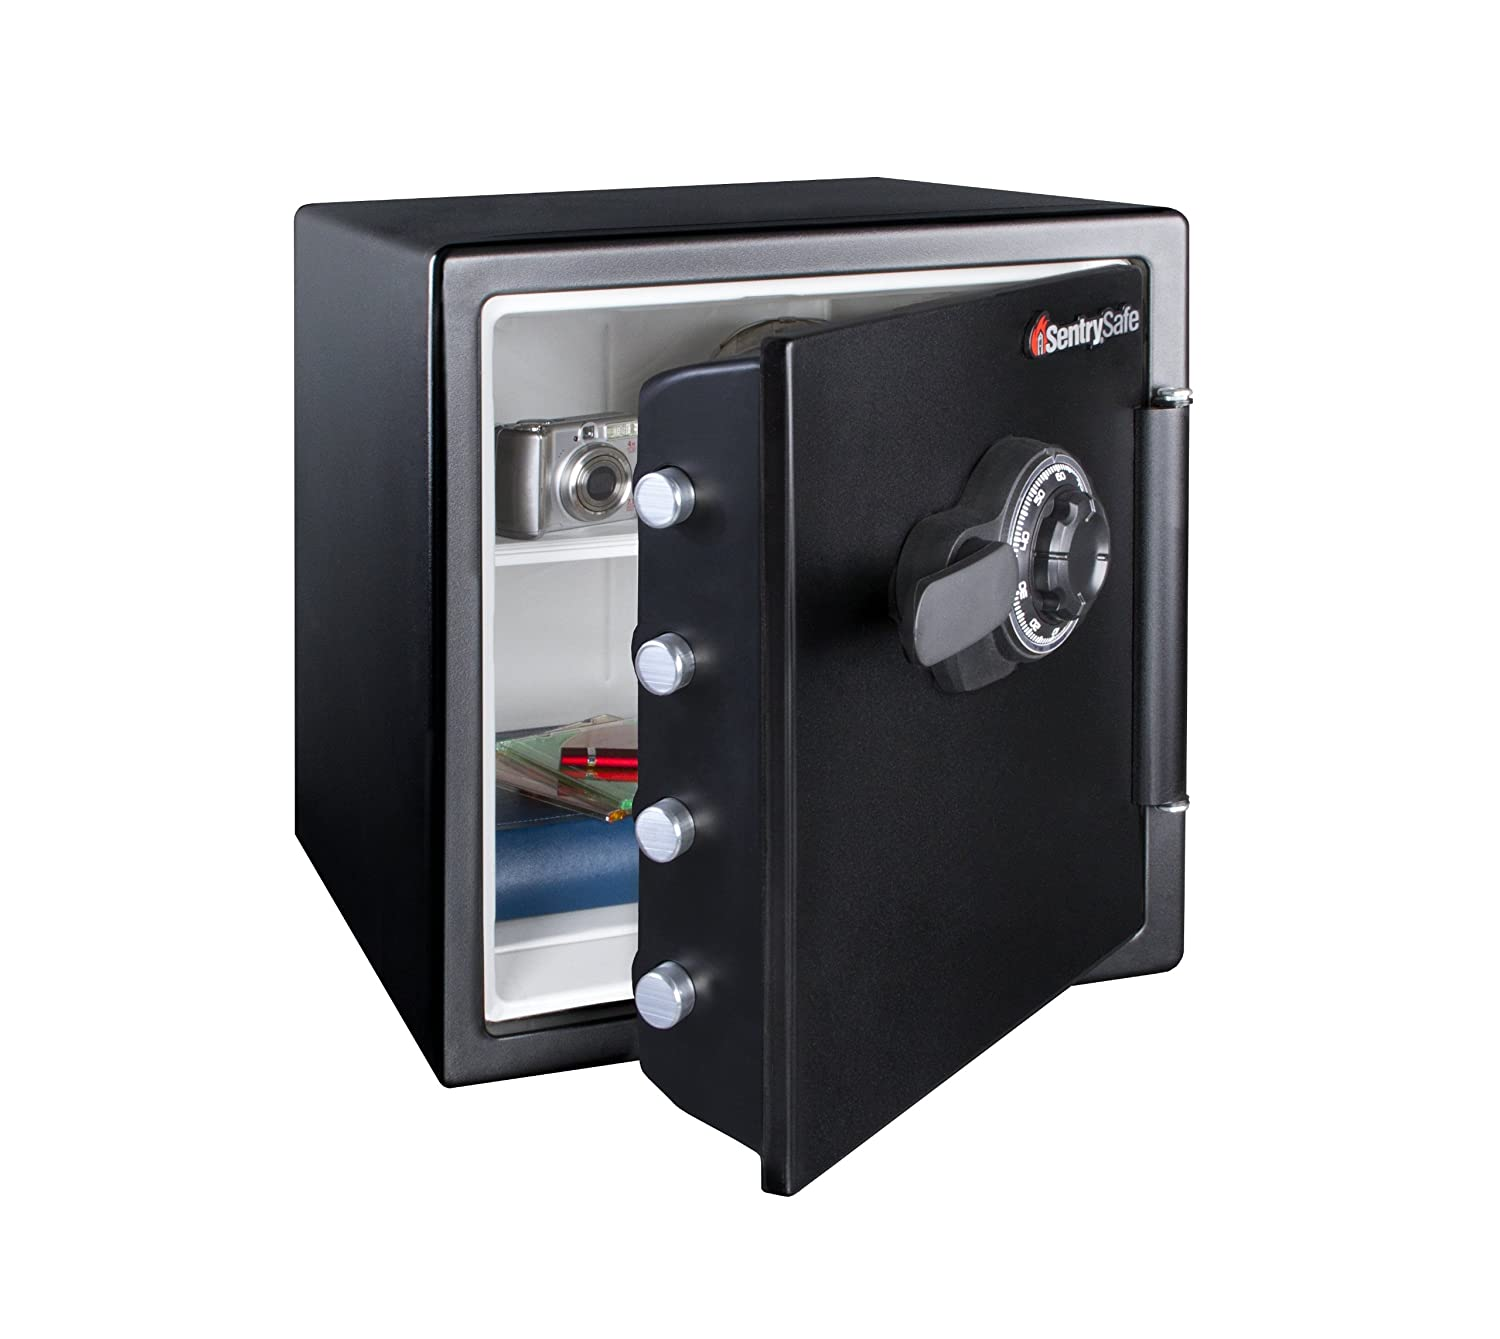 SentrySafe Fire and Water Safe, Extra Large Combination Safe, 1.23 Cubic  Feet, SFW123CS - - Amazon.com